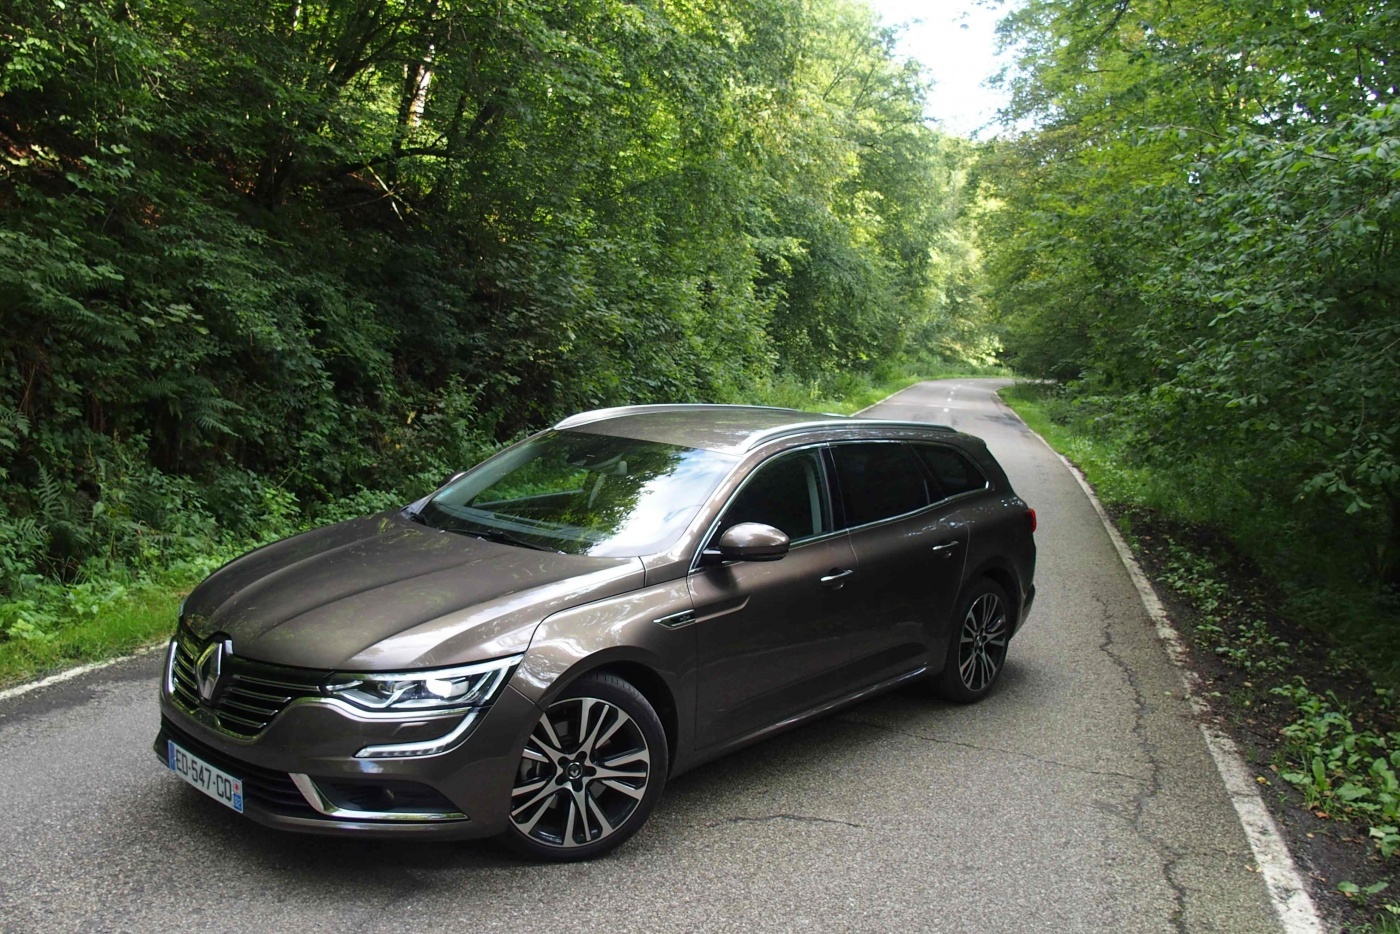 essai renault talisman estate tce 200 initiale paris le cargo express blog automobile. Black Bedroom Furniture Sets. Home Design Ideas